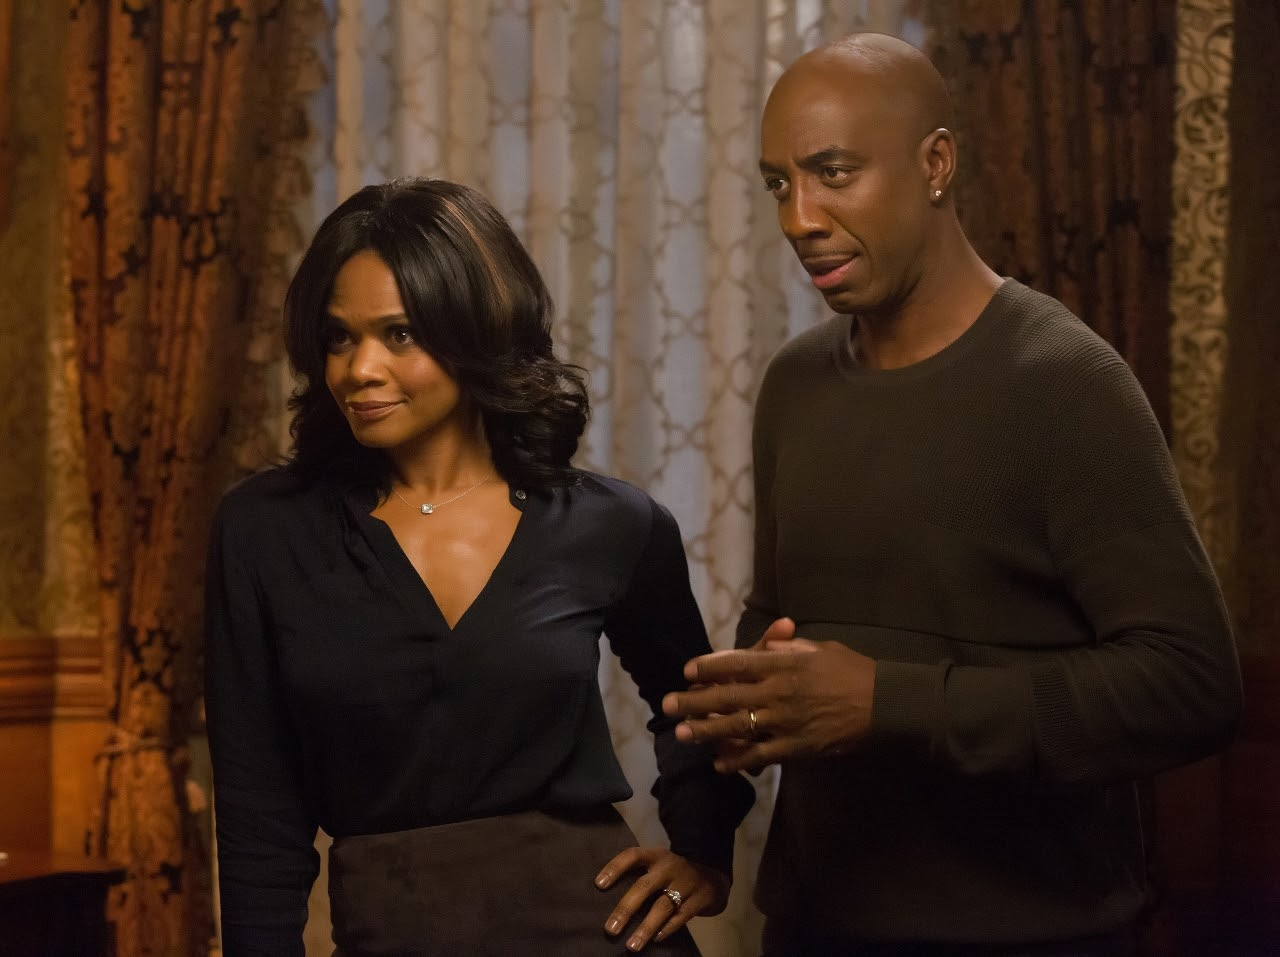 Kimberly Elise and JB Smoove in ALMOST CHRISTMAS. (Photo by Quantrell D. Colbert / courtesy of Universal Pictures).